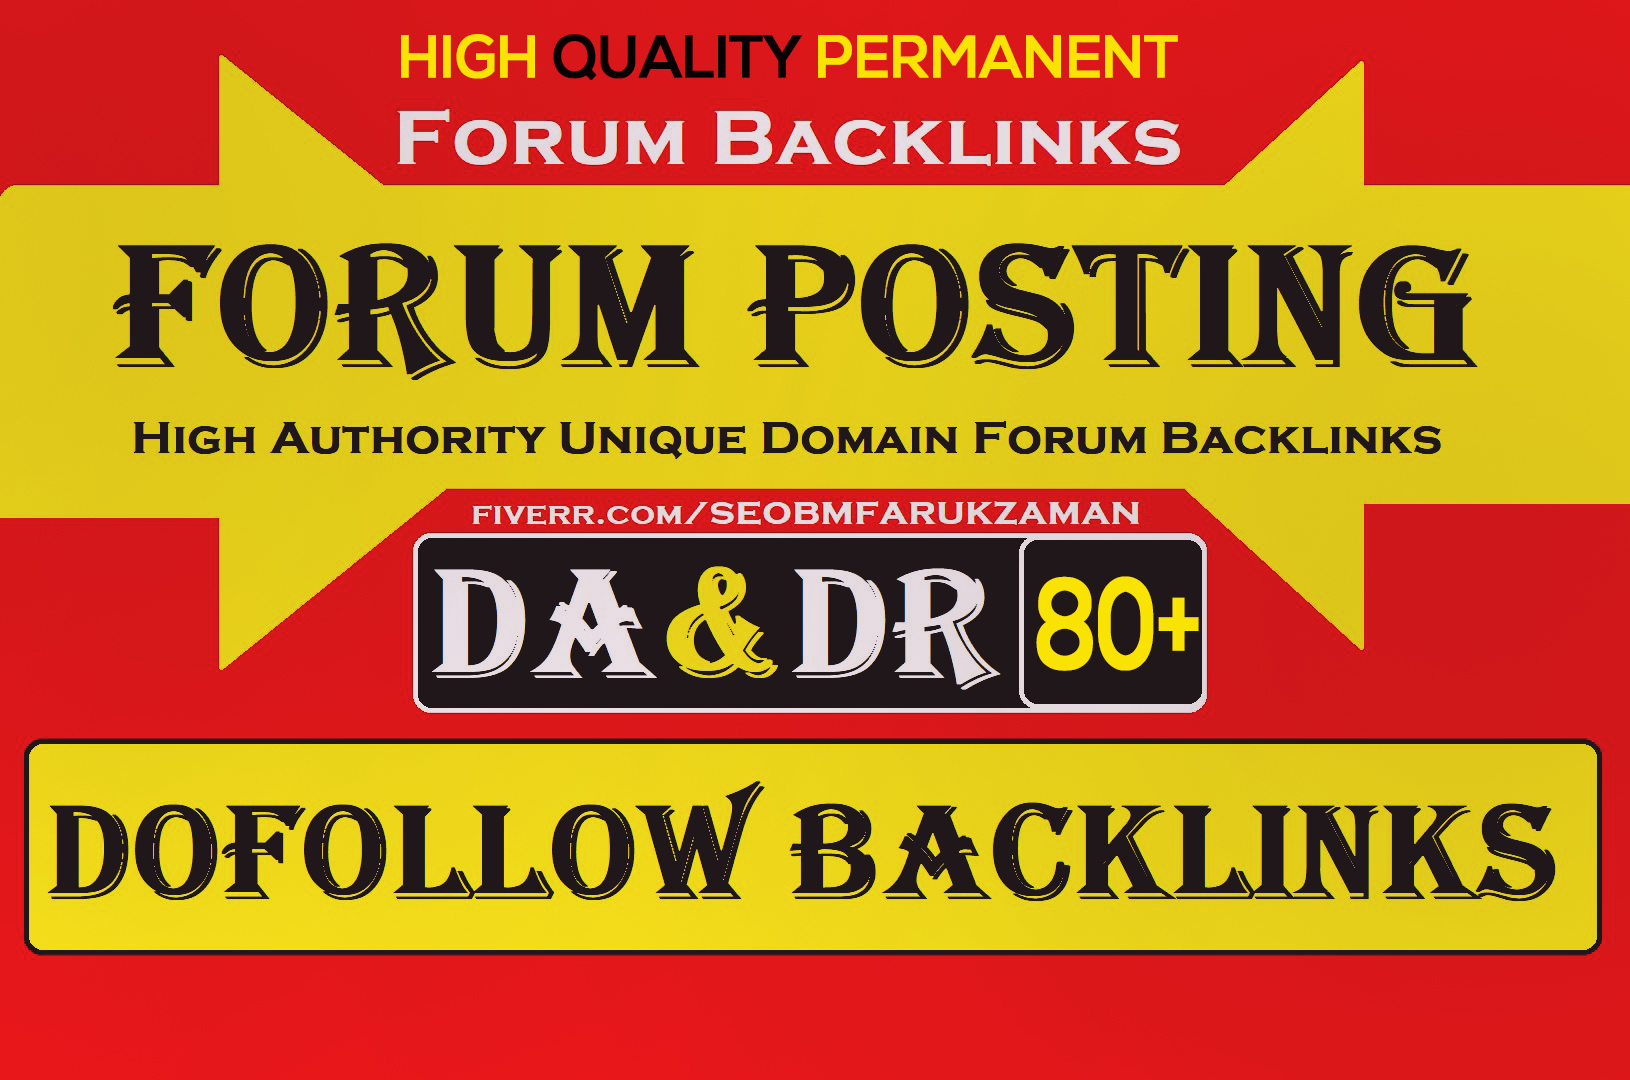 High Da 80 plus forum posting Dofollow backlinks